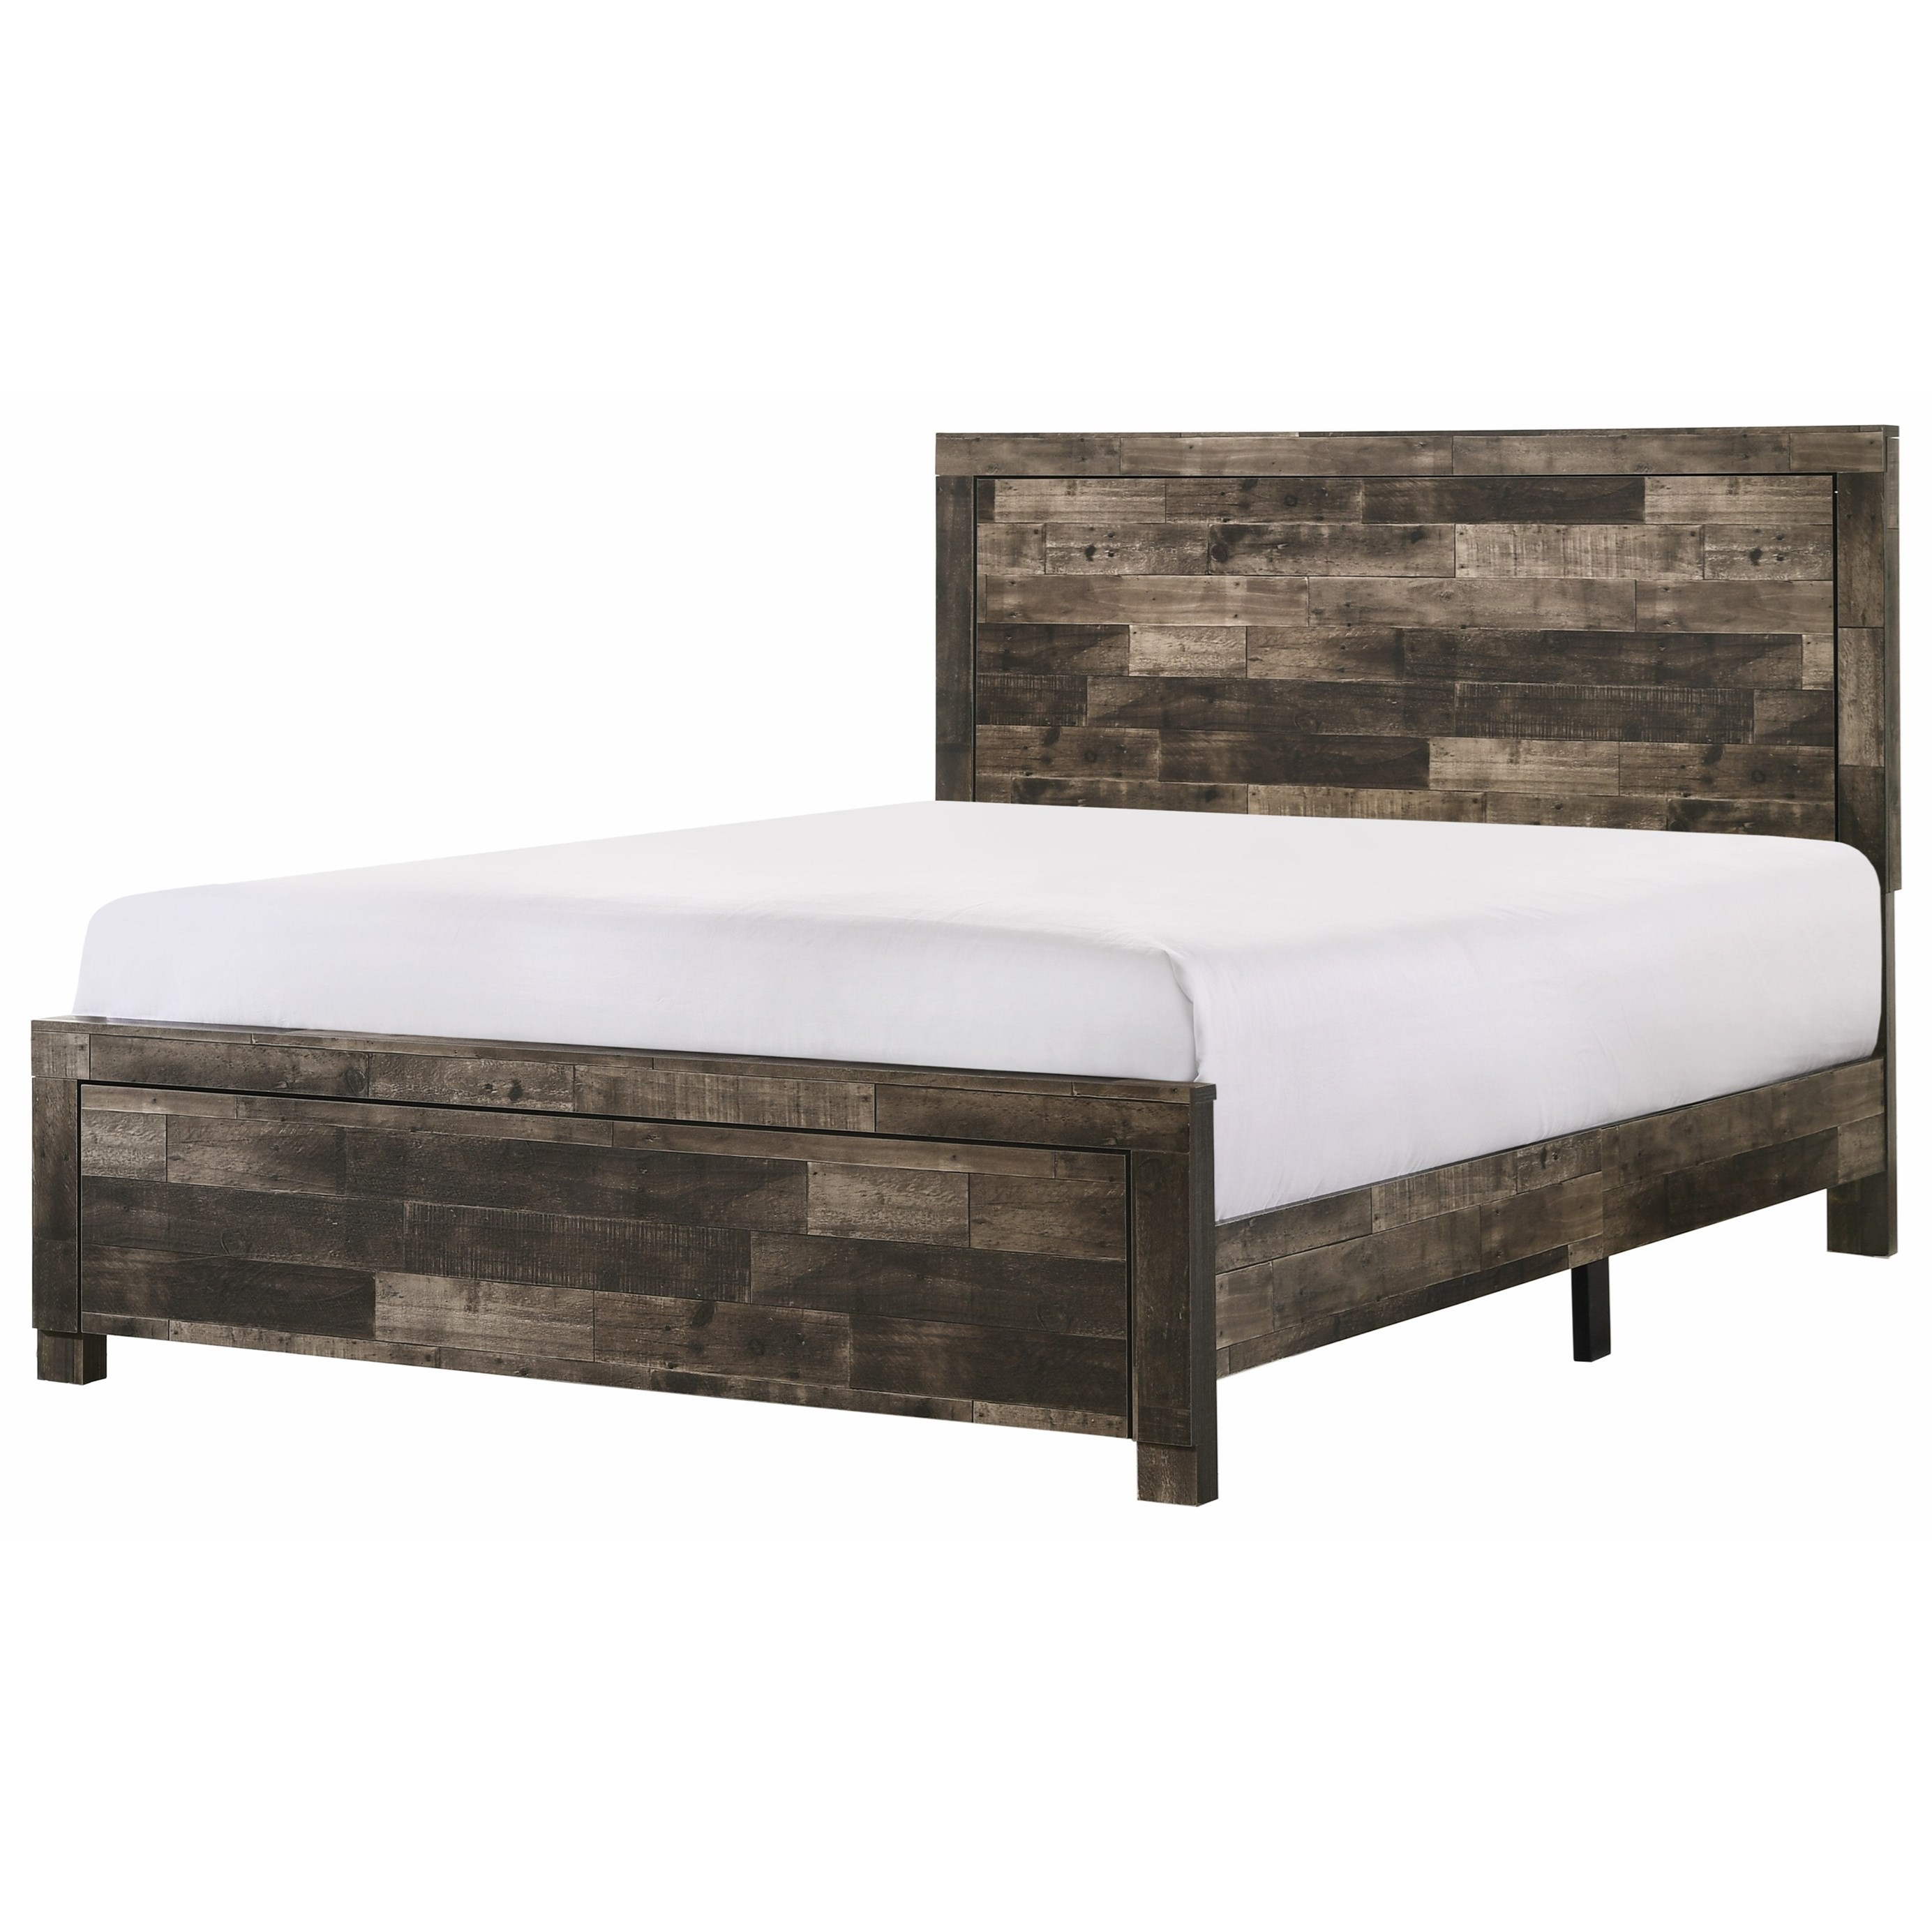 Tallulah Queen Bed in One Box by Crown Mark at Northeast Factory Direct